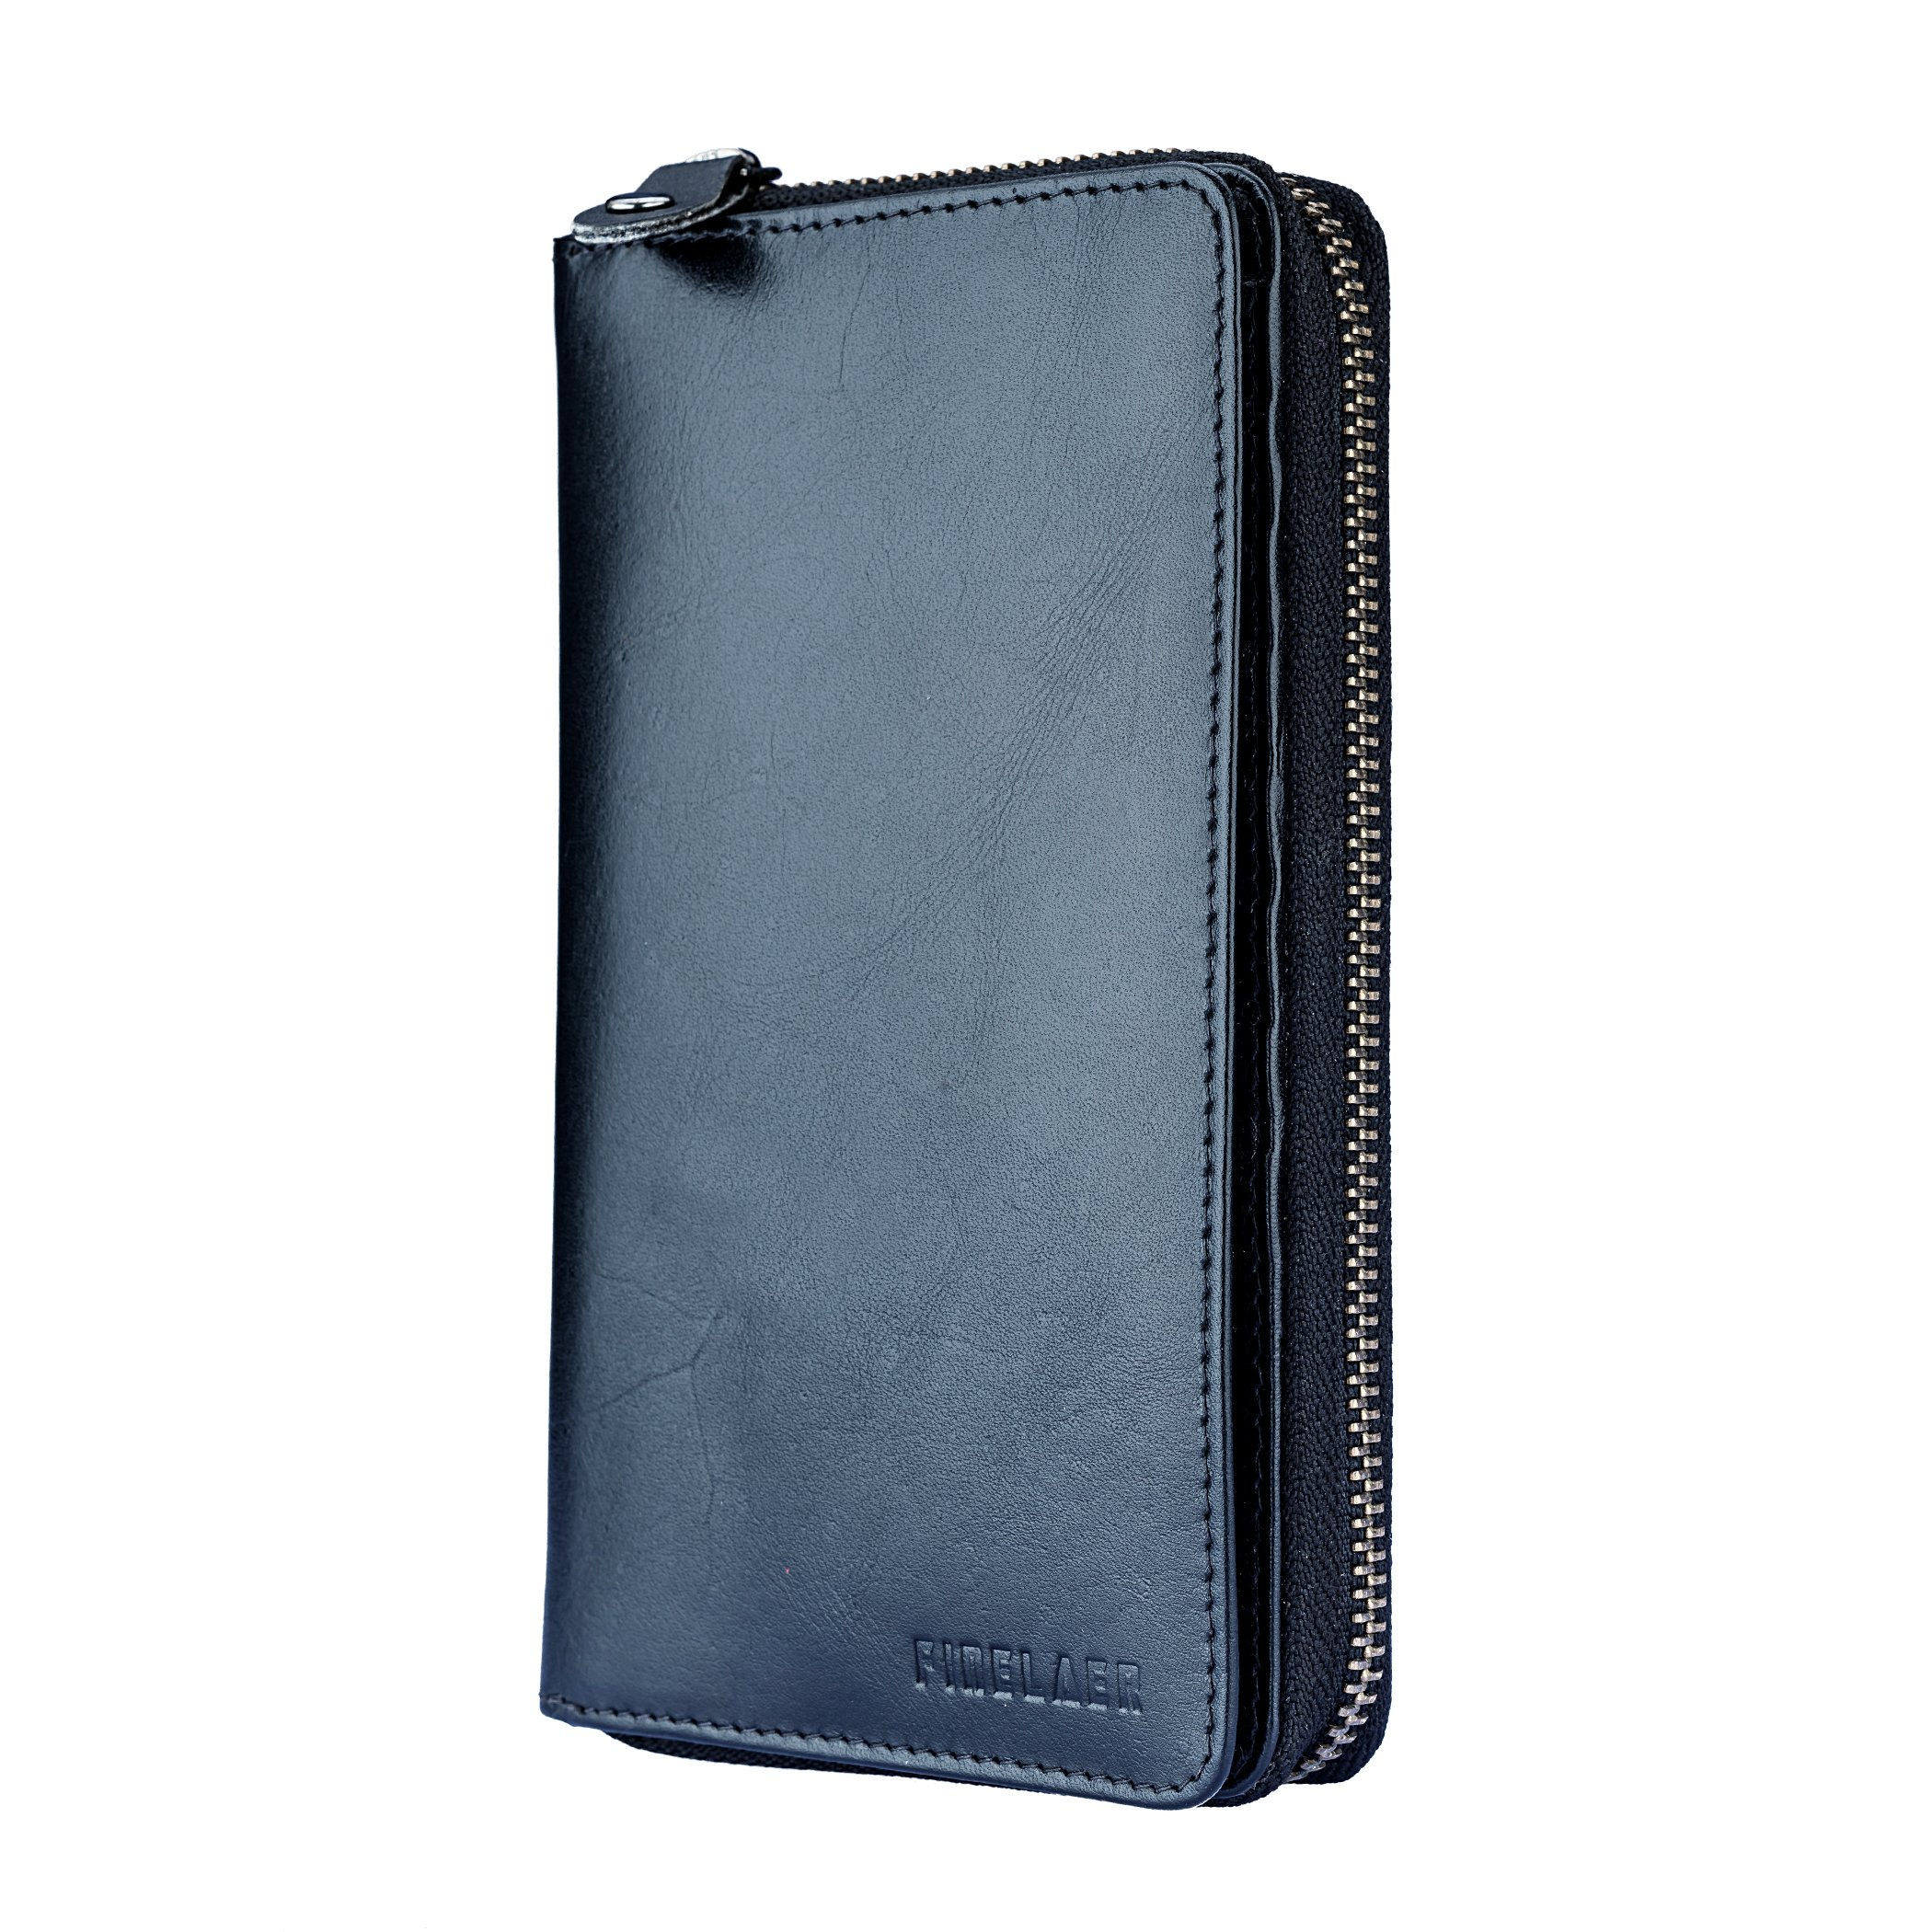 Leather Bifold Travel Wallet Passport Black|Finelaer by FINELAER (Image #4)